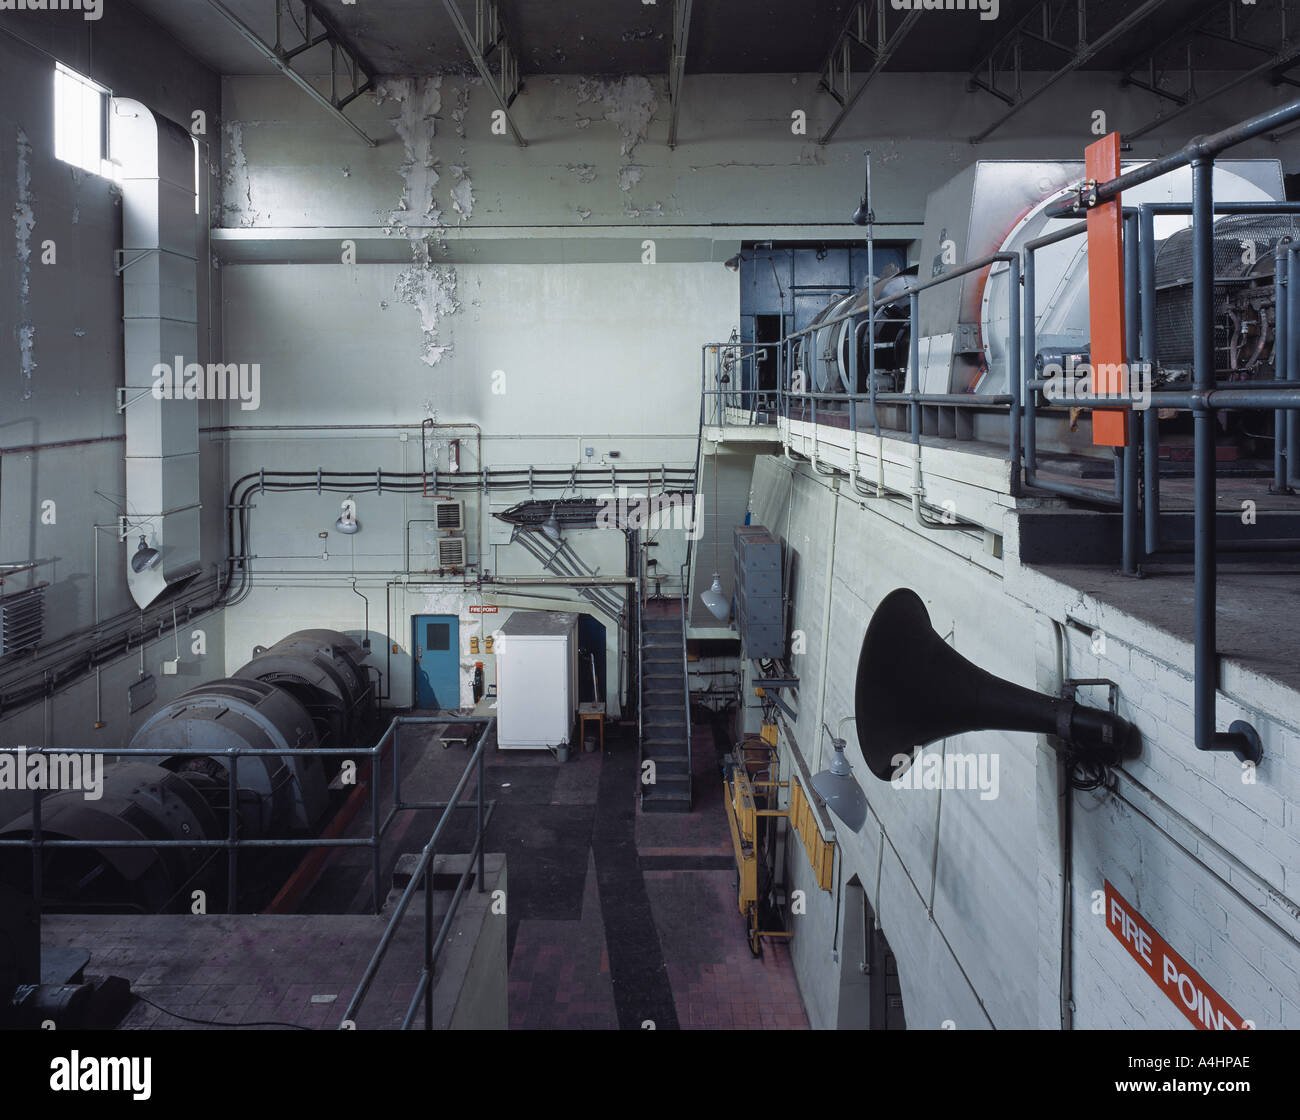 R133 TRANSONIC WIND TUNNEL Stock Photo